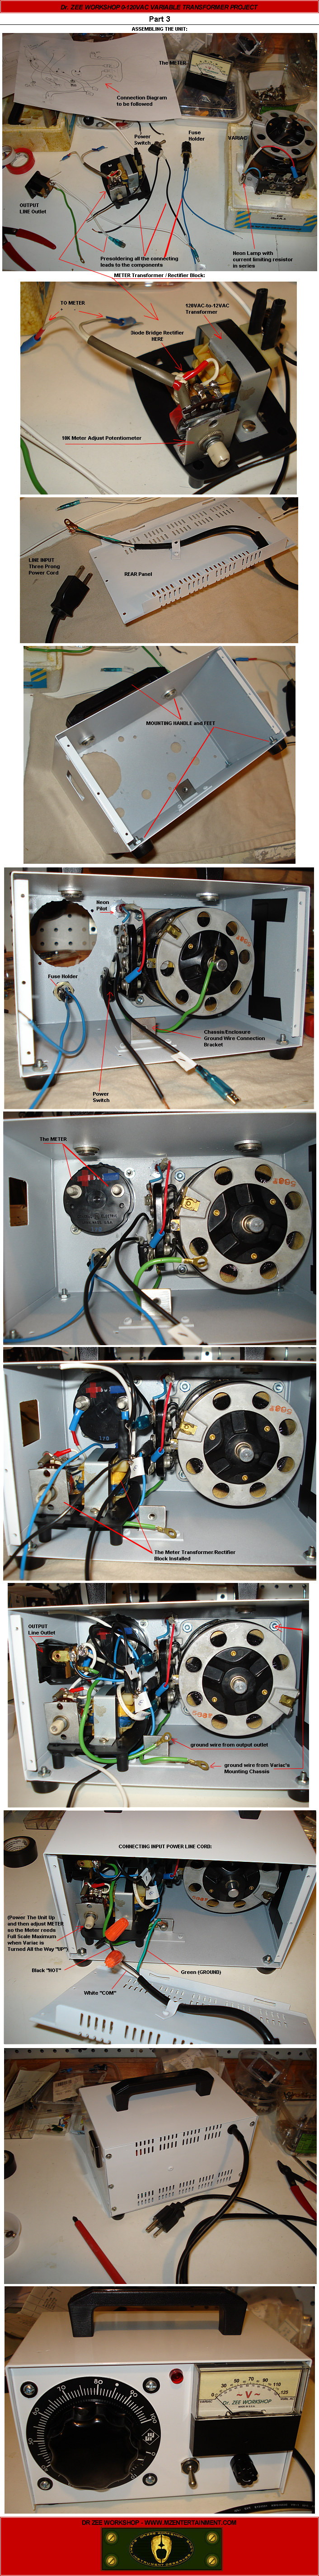 hight resolution of dr zee workshop variac circuit and wiring diagram powerstat variable transformers 21 22 40 series installation operation and maintenance